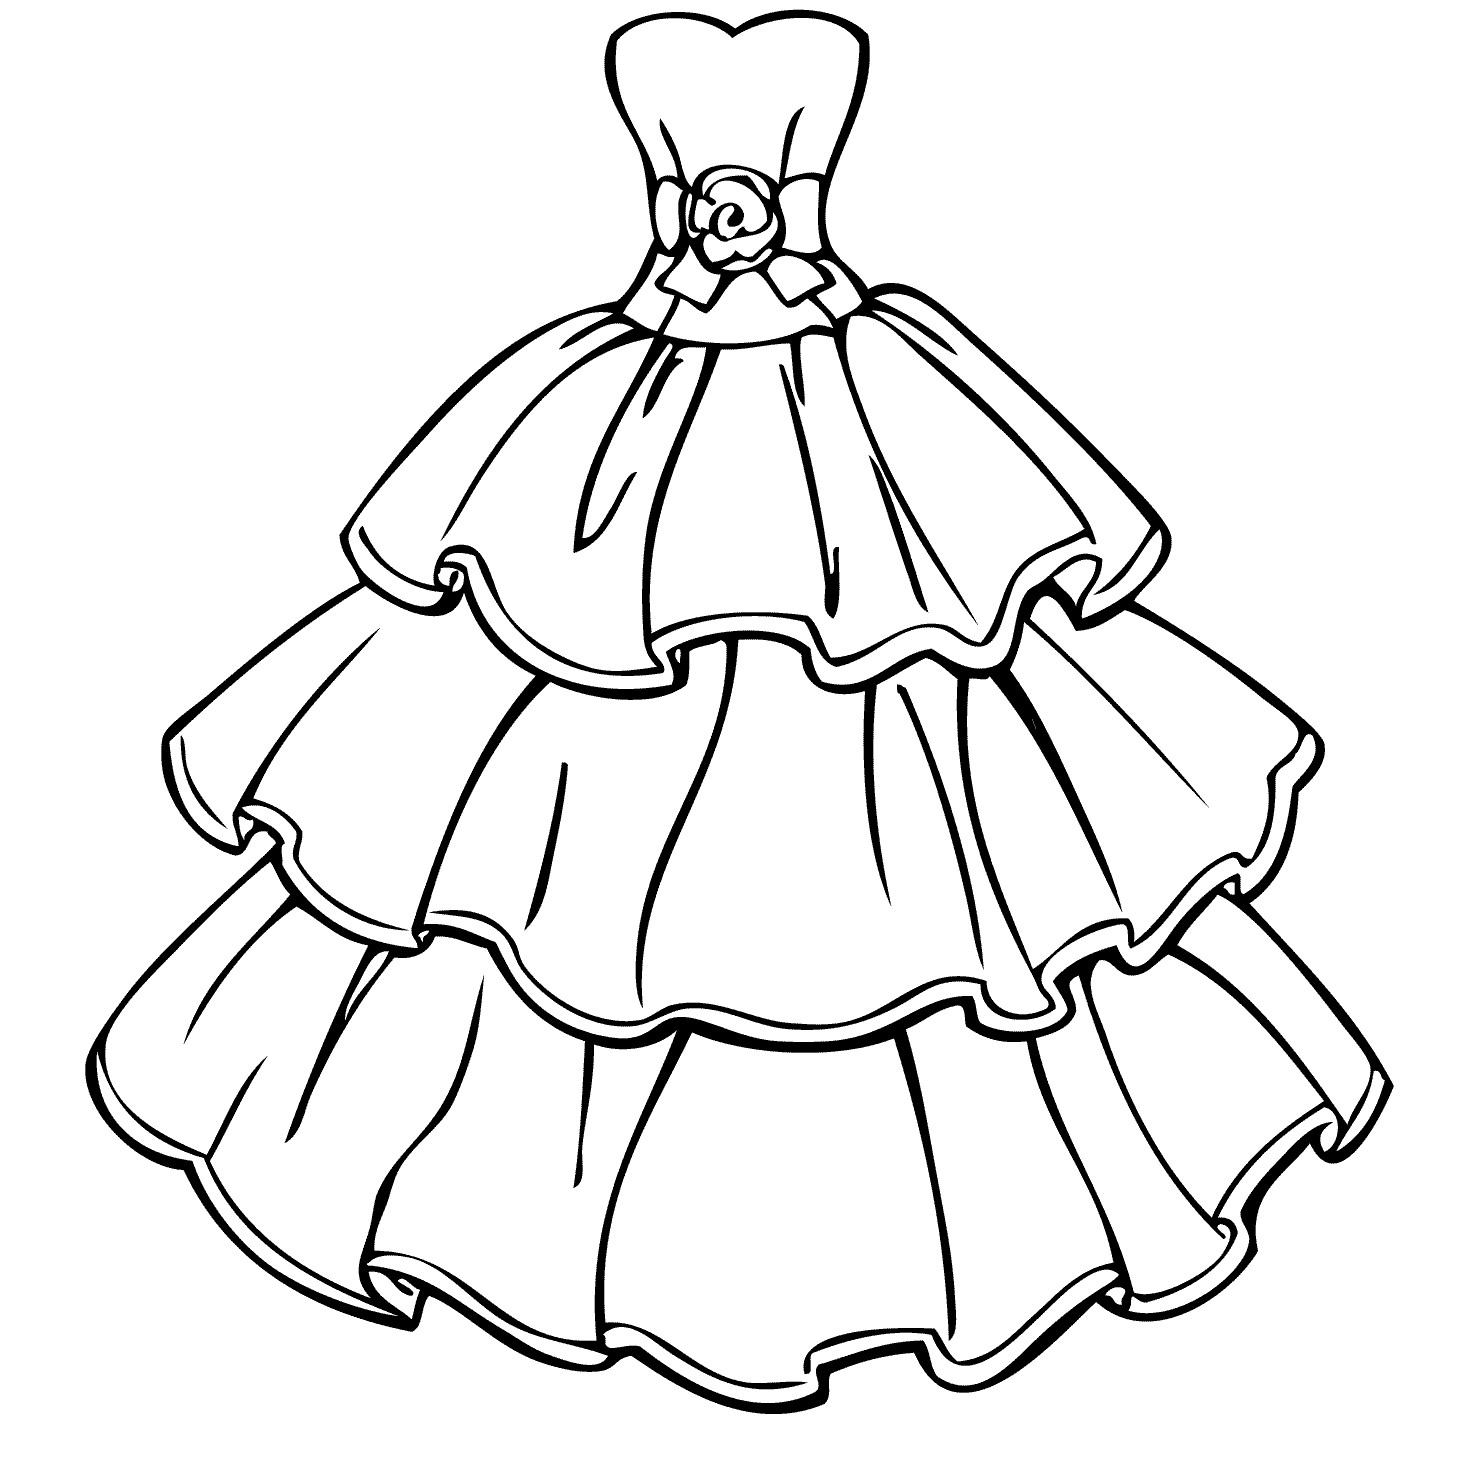 dress coloring pages to download and print for free